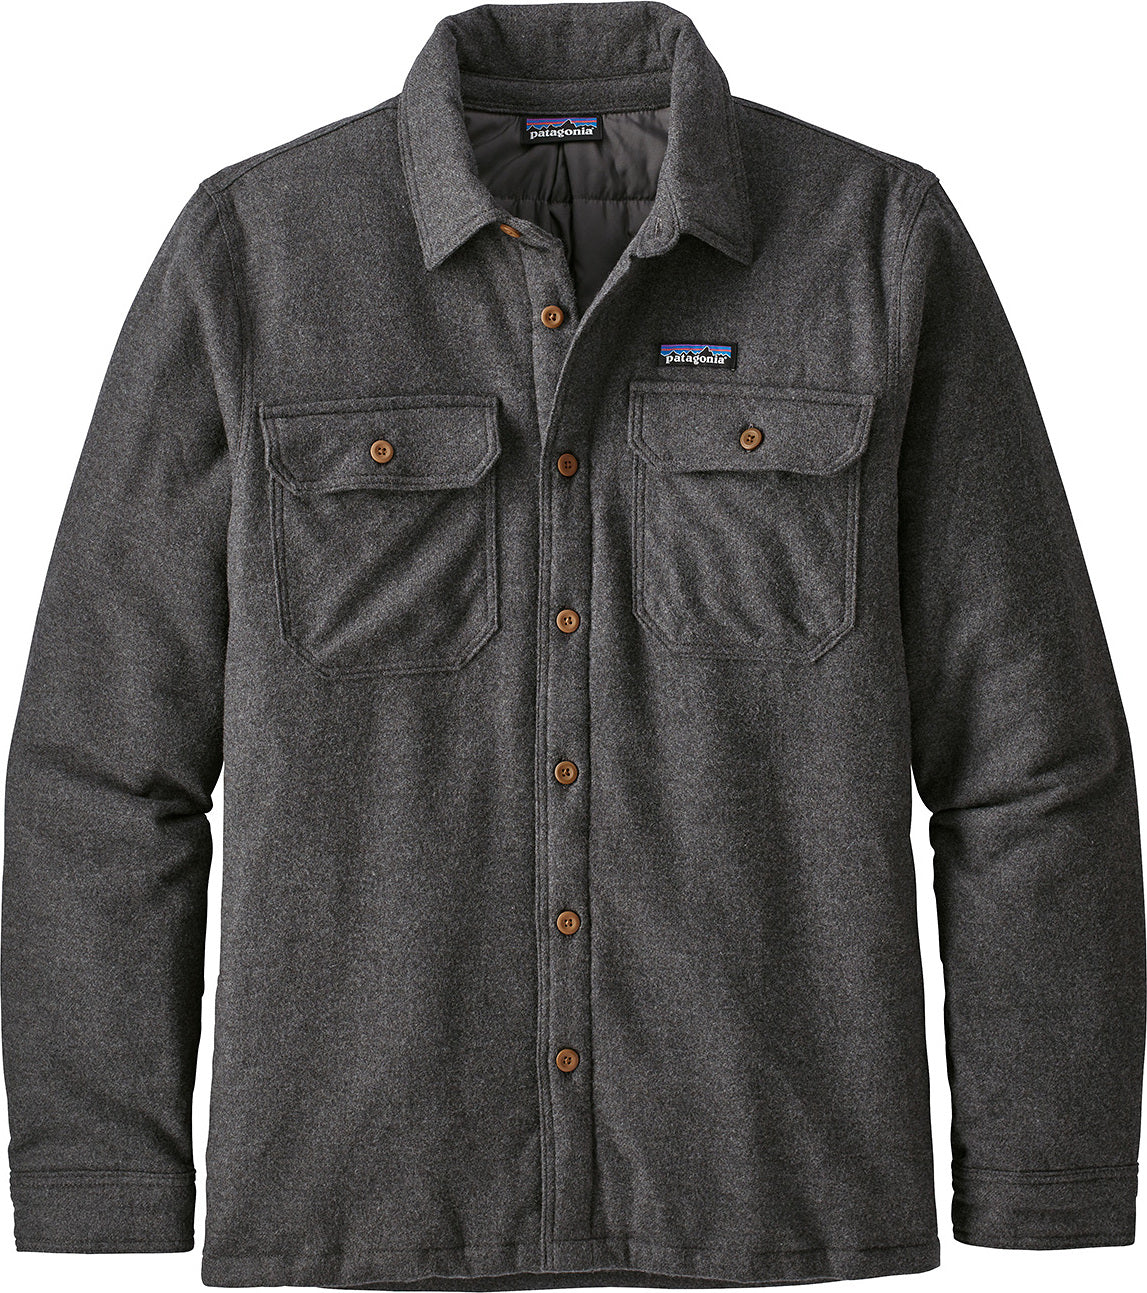 c9cfc2b916858 Patagonia Insulated Fjord Flannel Jacket - Men's | Altitude Sports